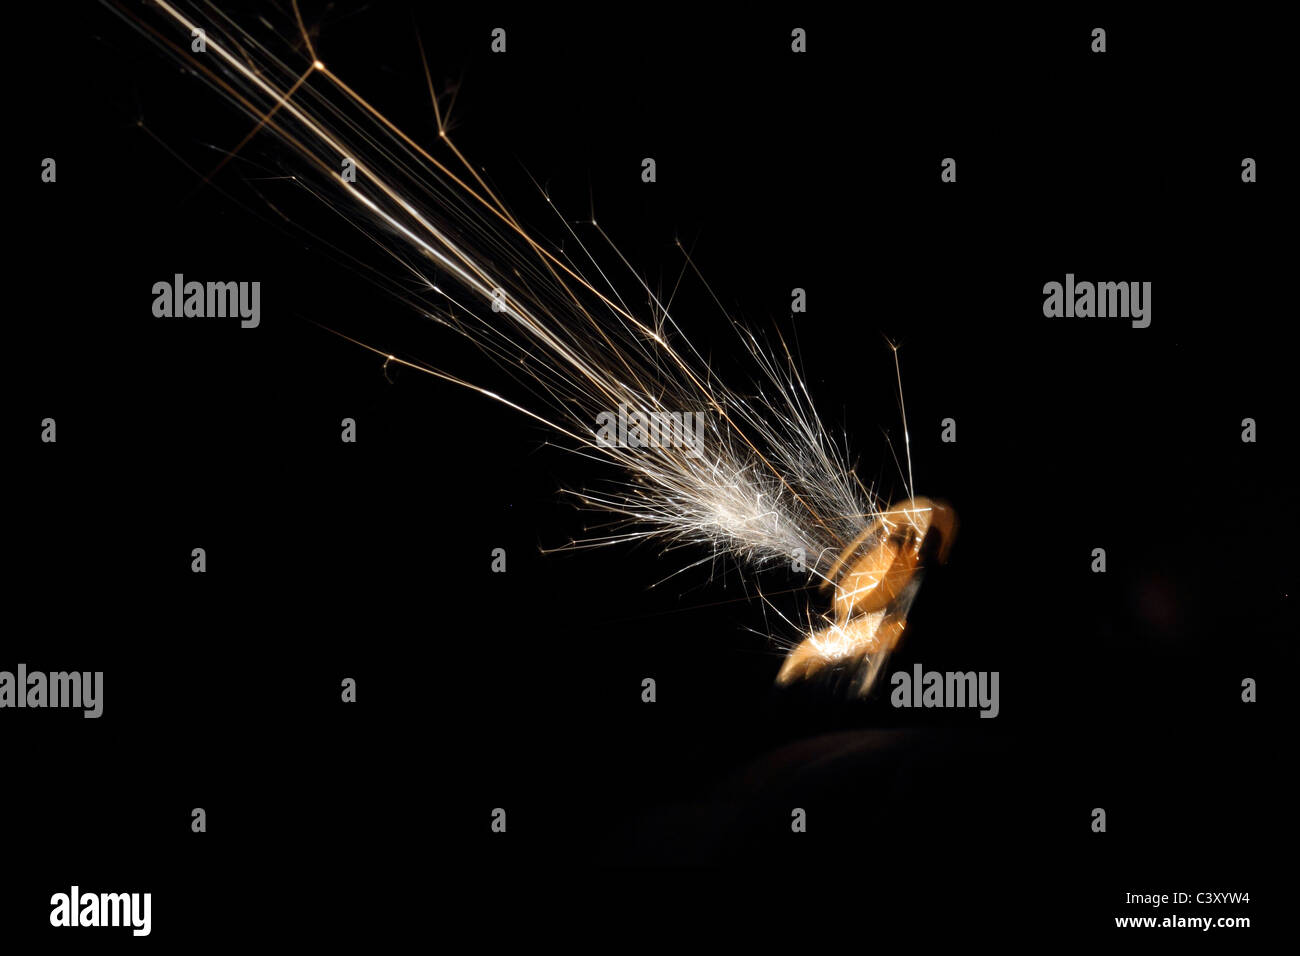 sparks from gas lighter - Stock Image